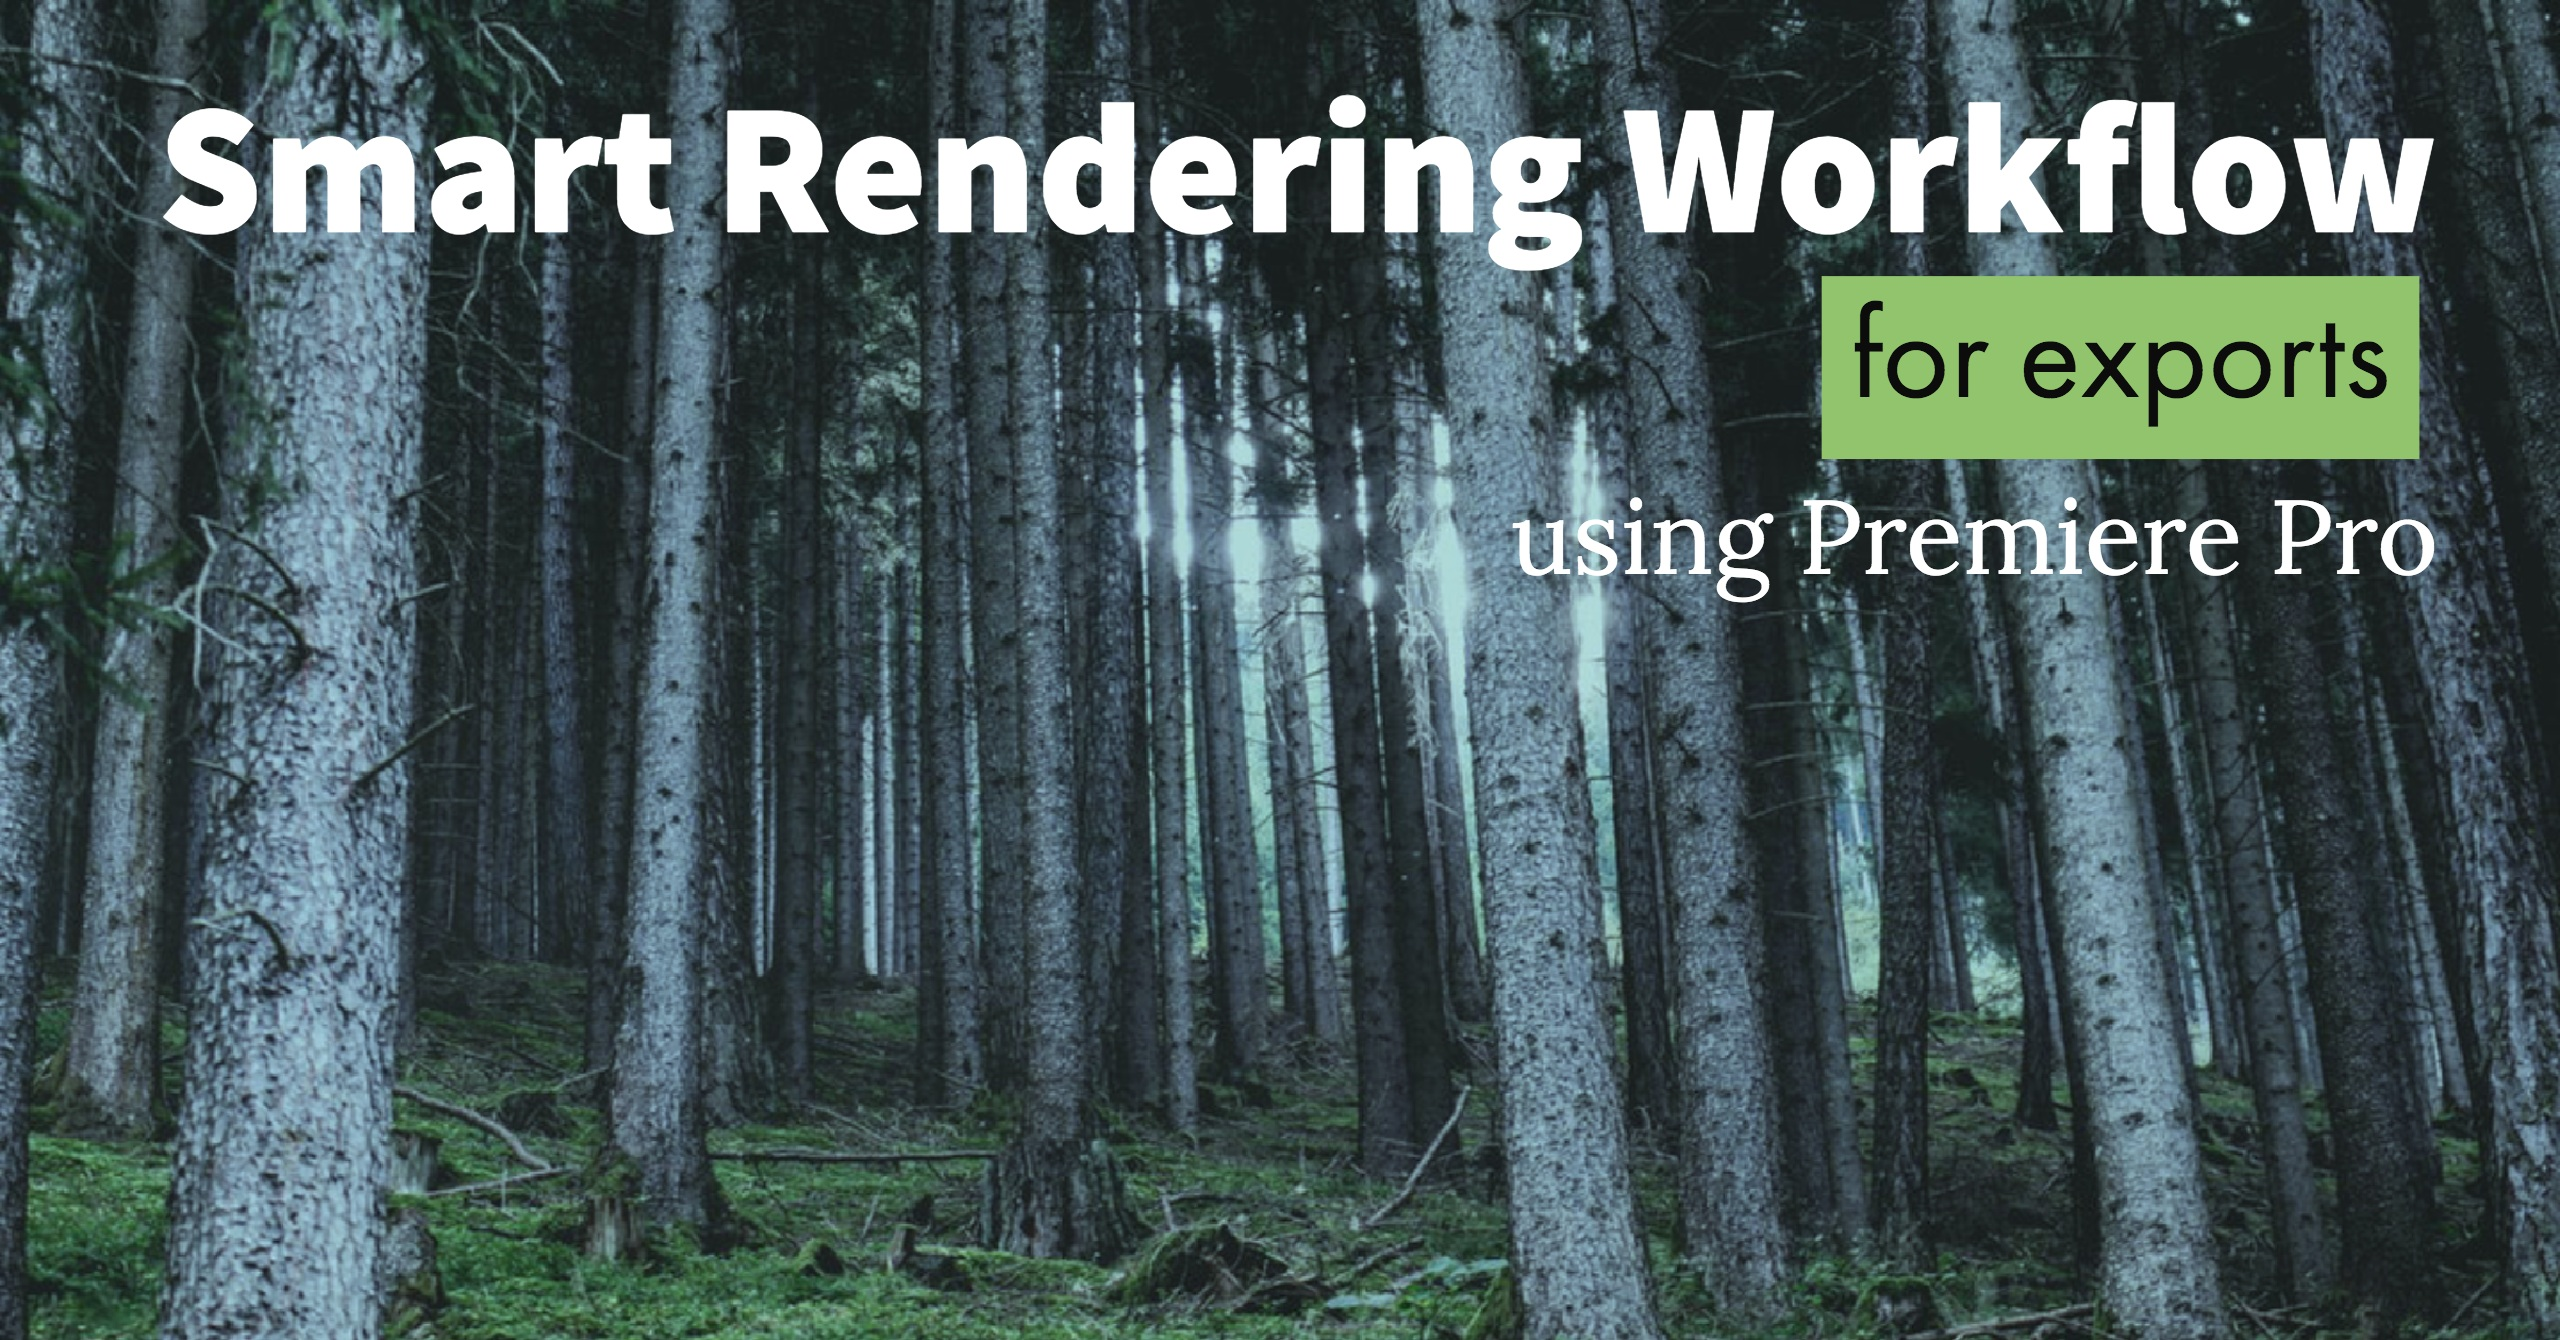 Premiere Pro Smart Rendering For Faster Exports – Welcome to